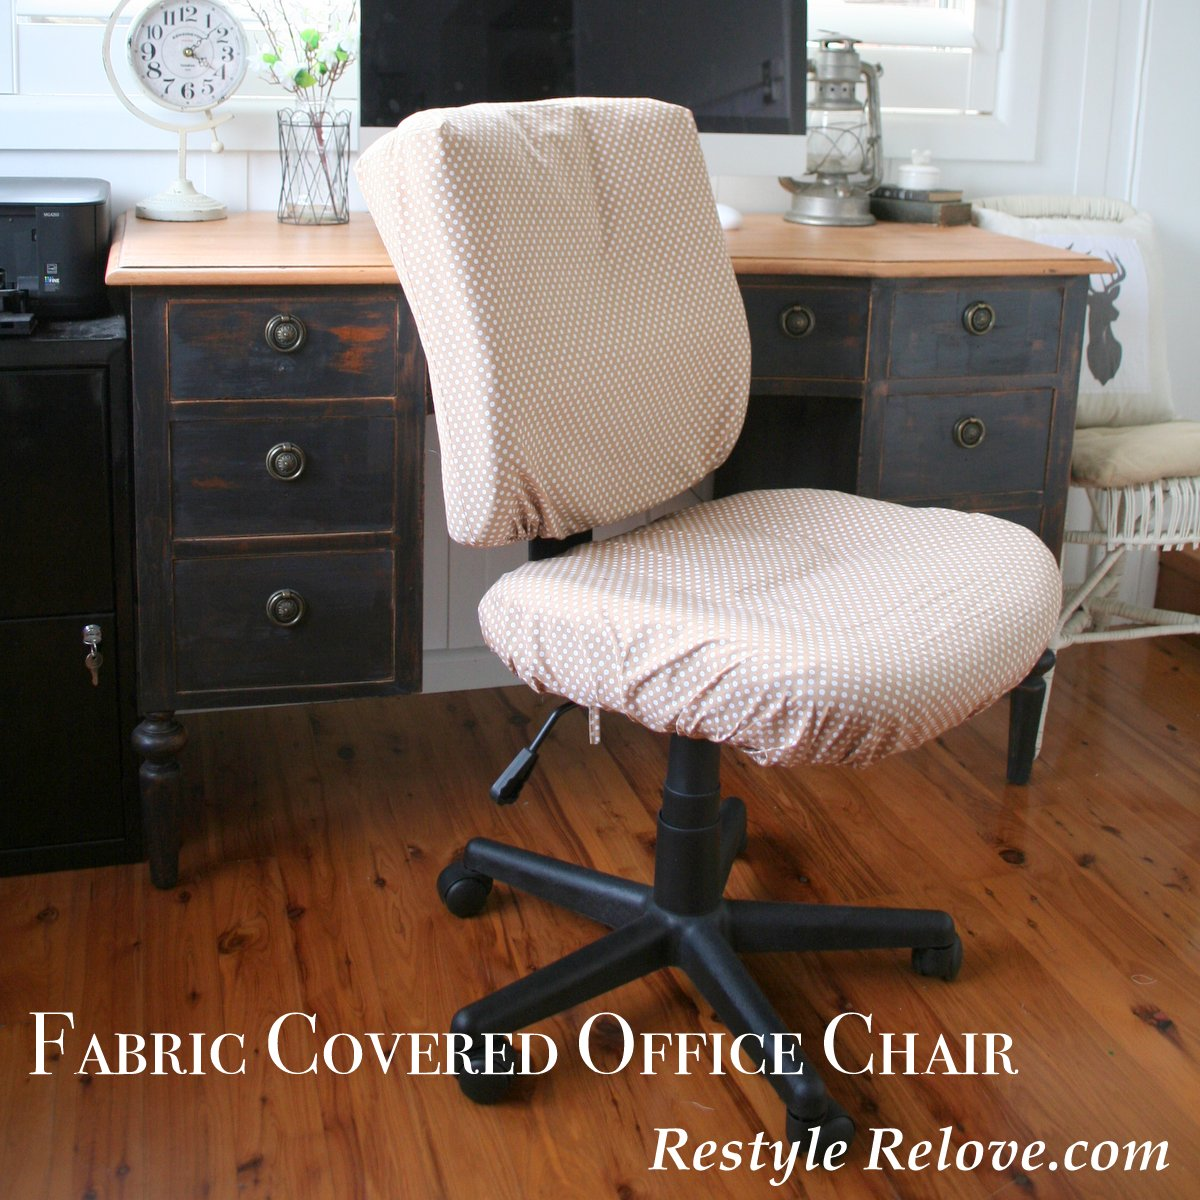 Cloth Covered Office Chairs Fabric Covered Office Chair